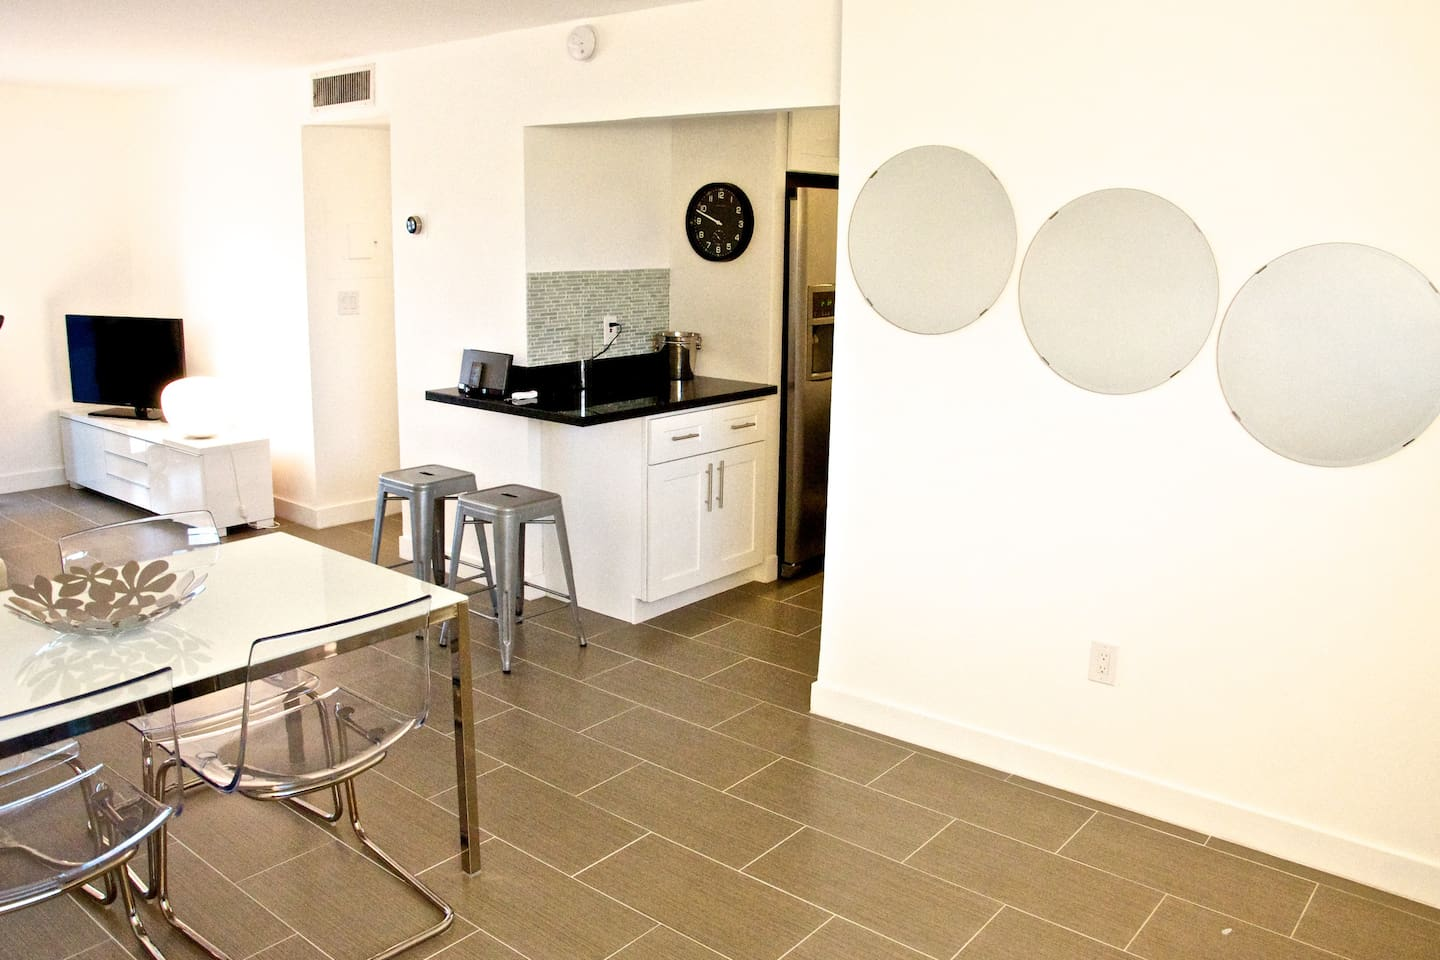 Center of the apartment. Bar and entrance to the kitchen in the middle and slightly on the left the hallway to bed and bath rooms.